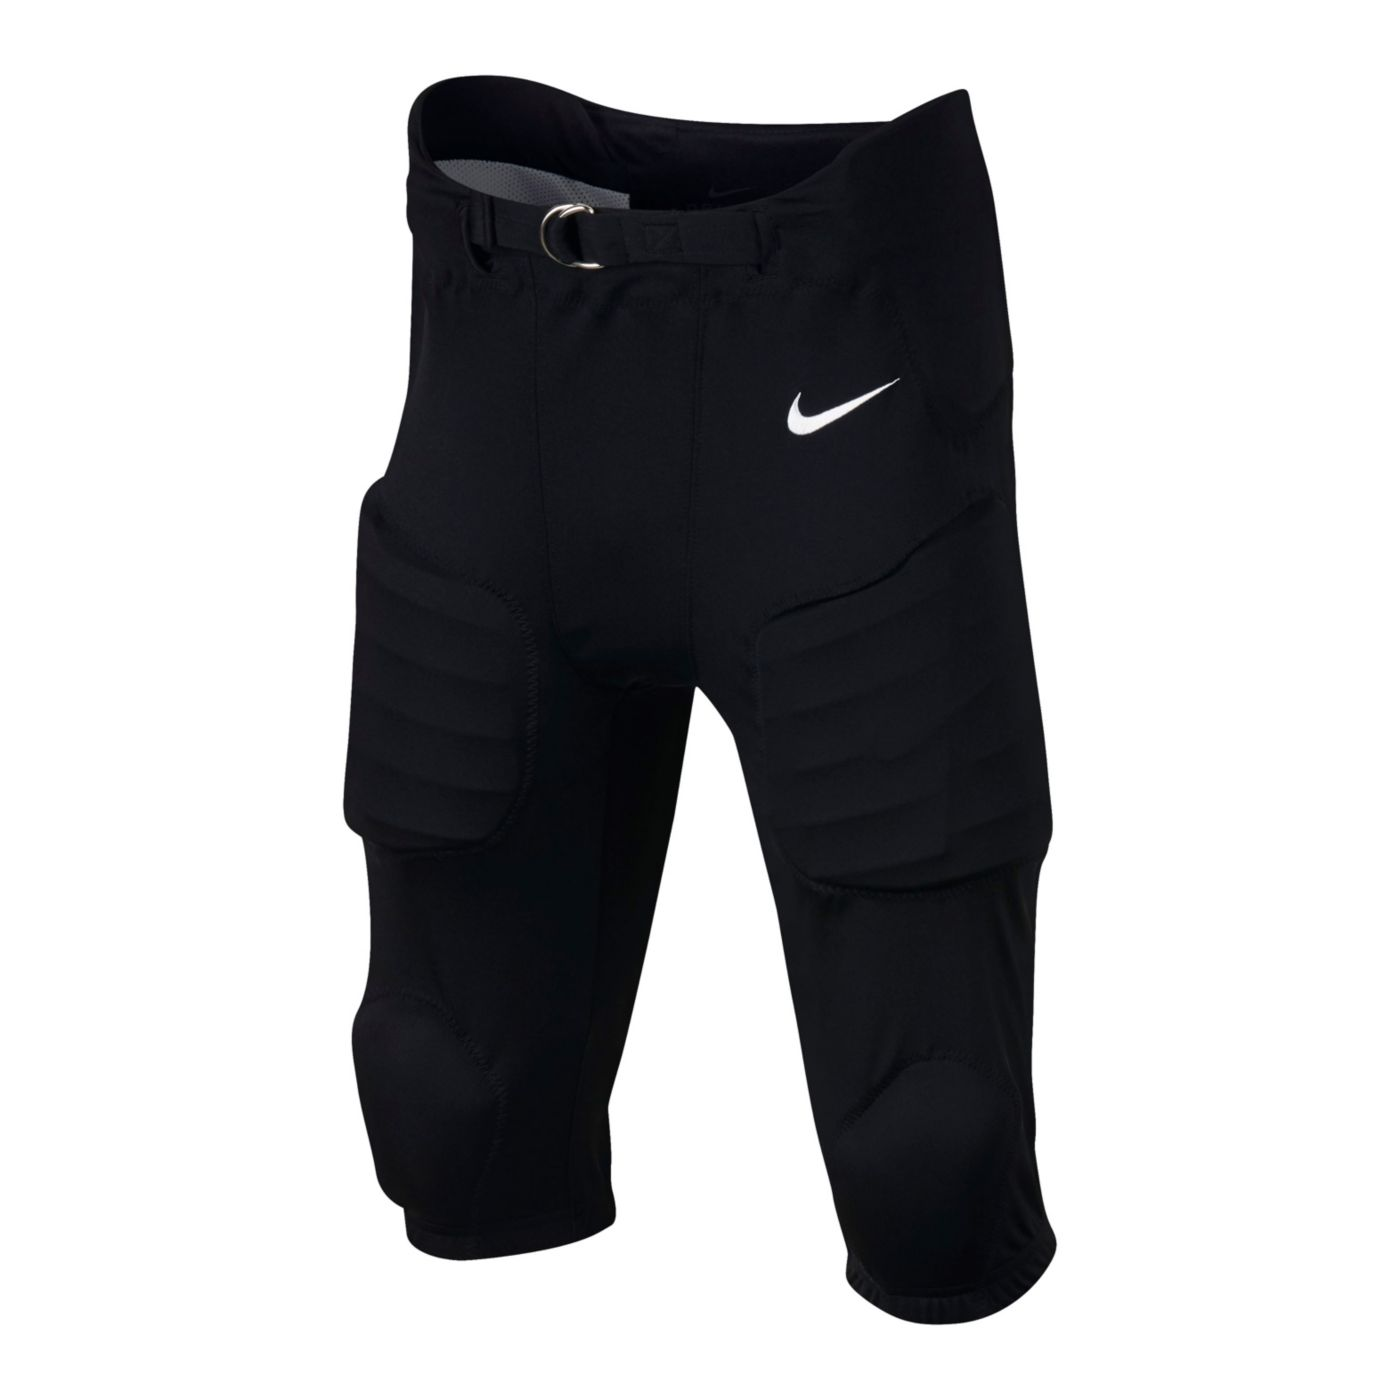 Nike Youth Recruit Integrated 3.0 Football Pants